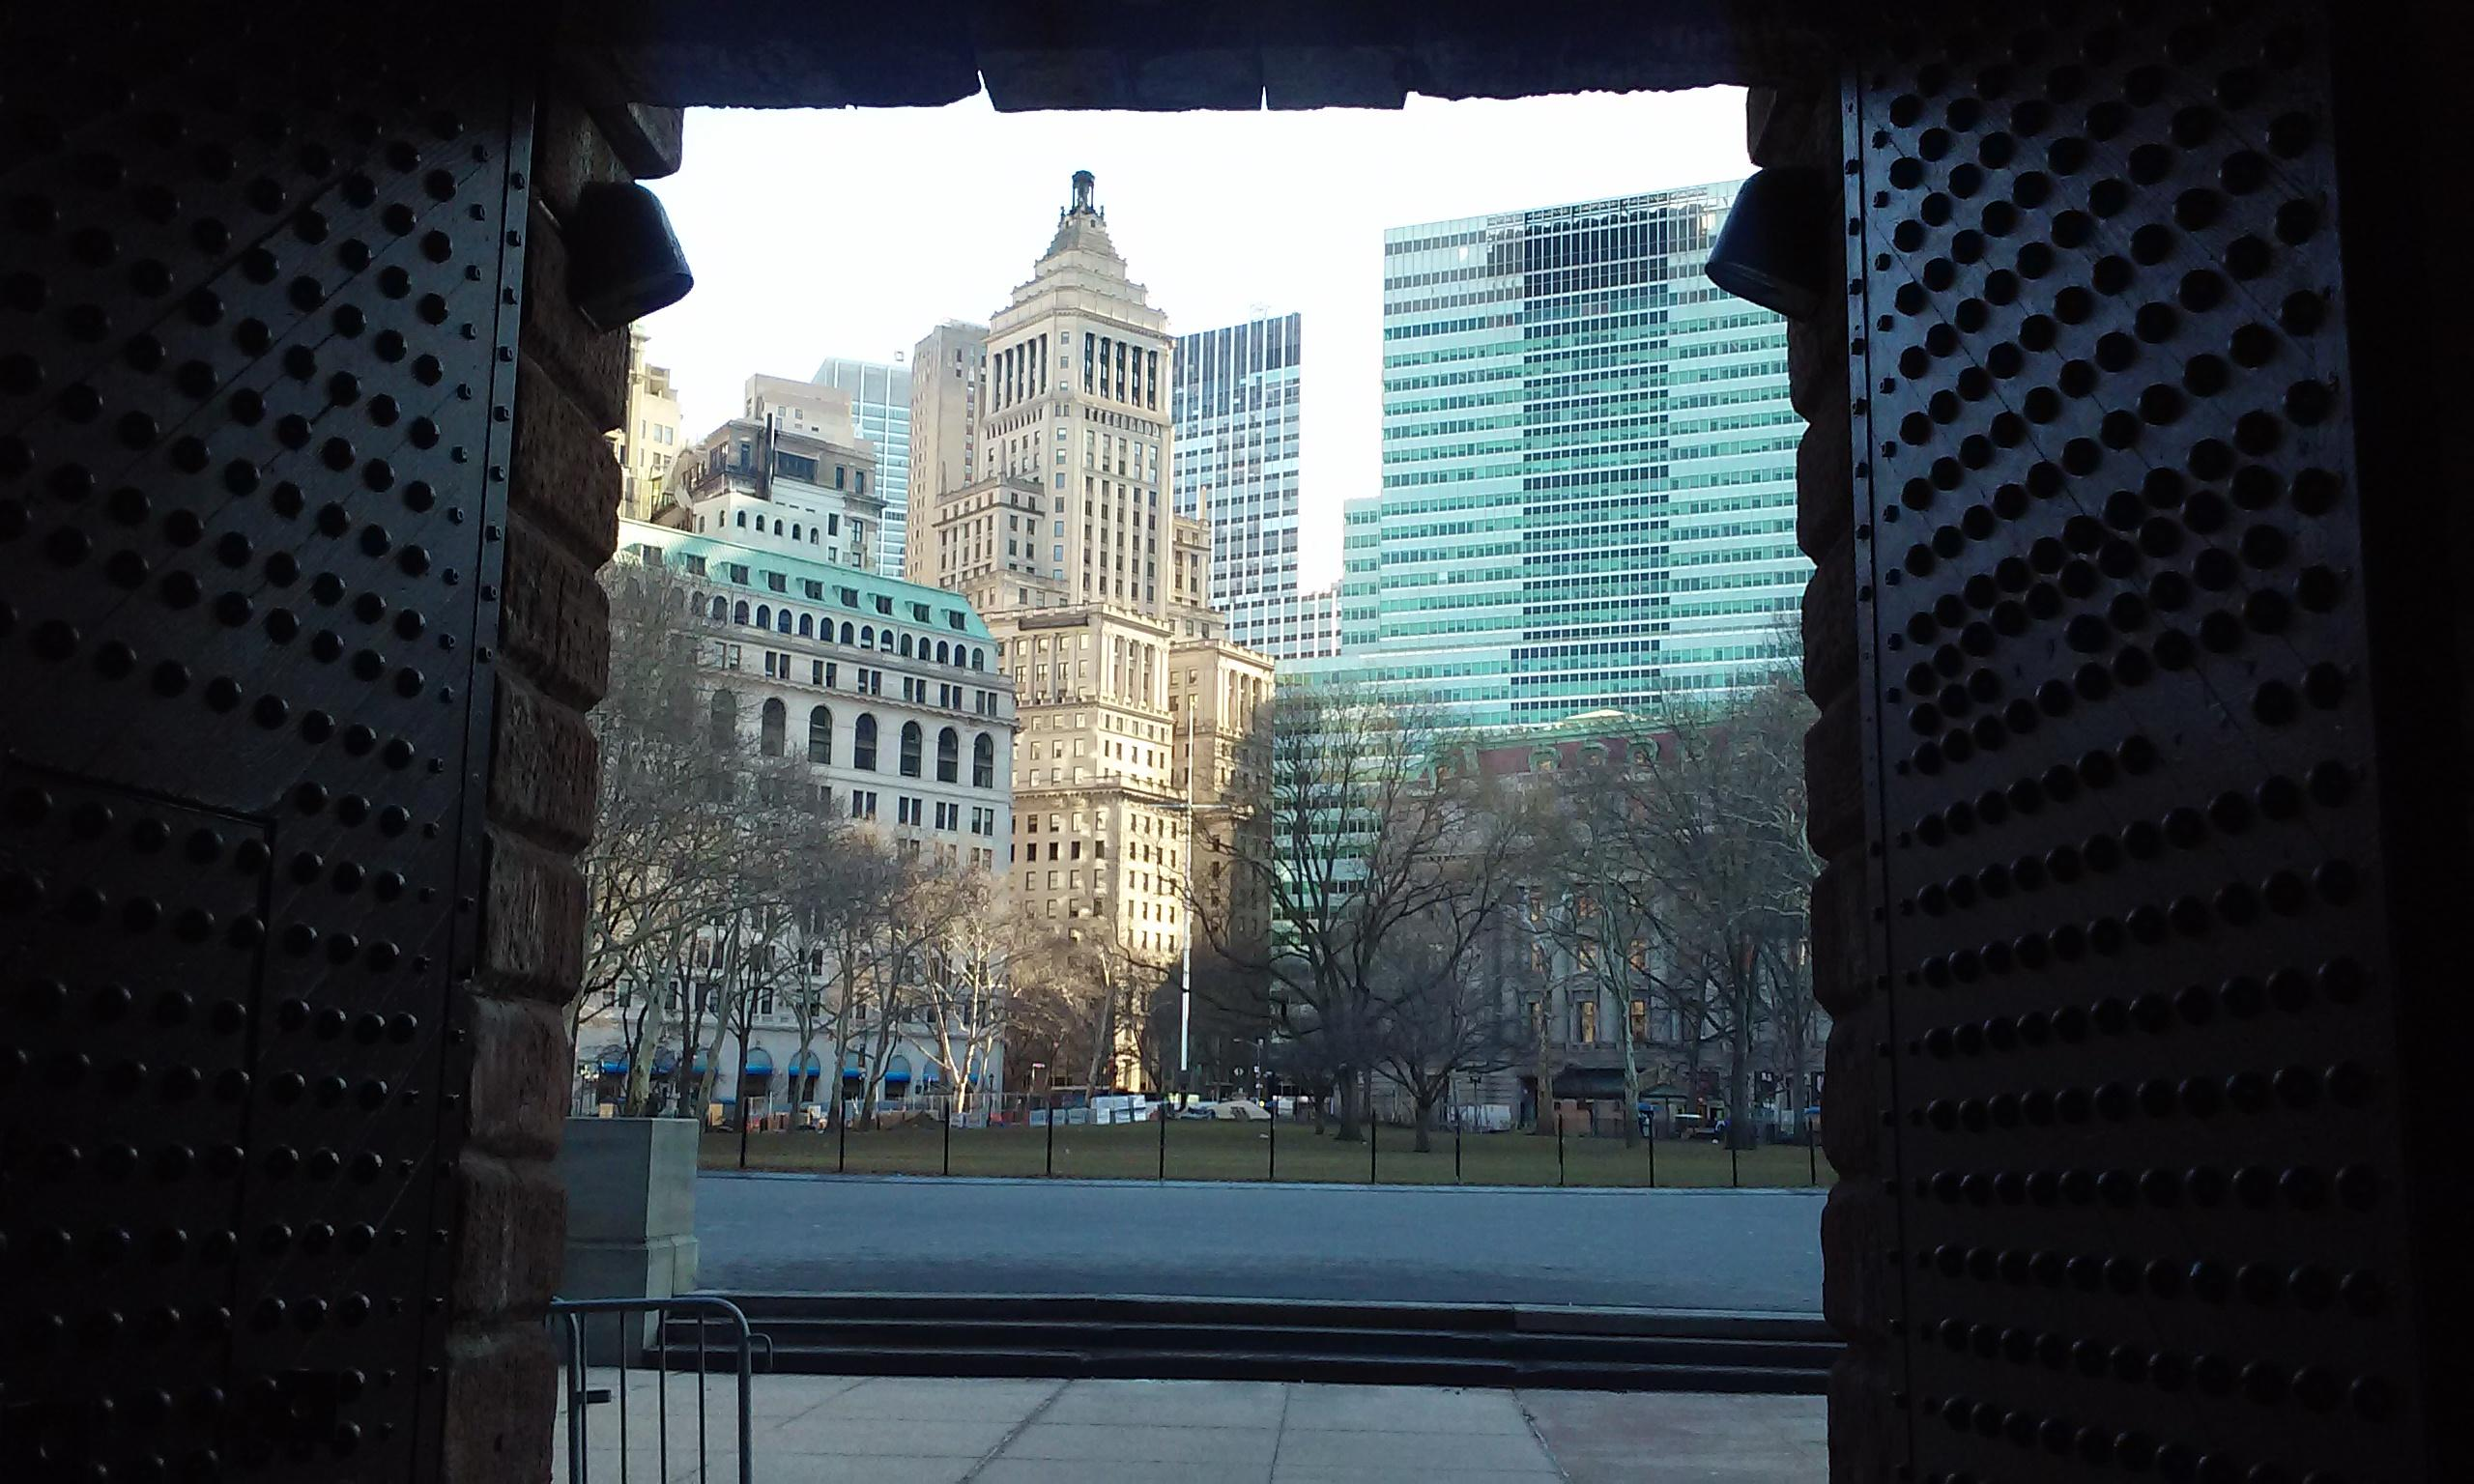 Battery Park framed by Castle Clinton